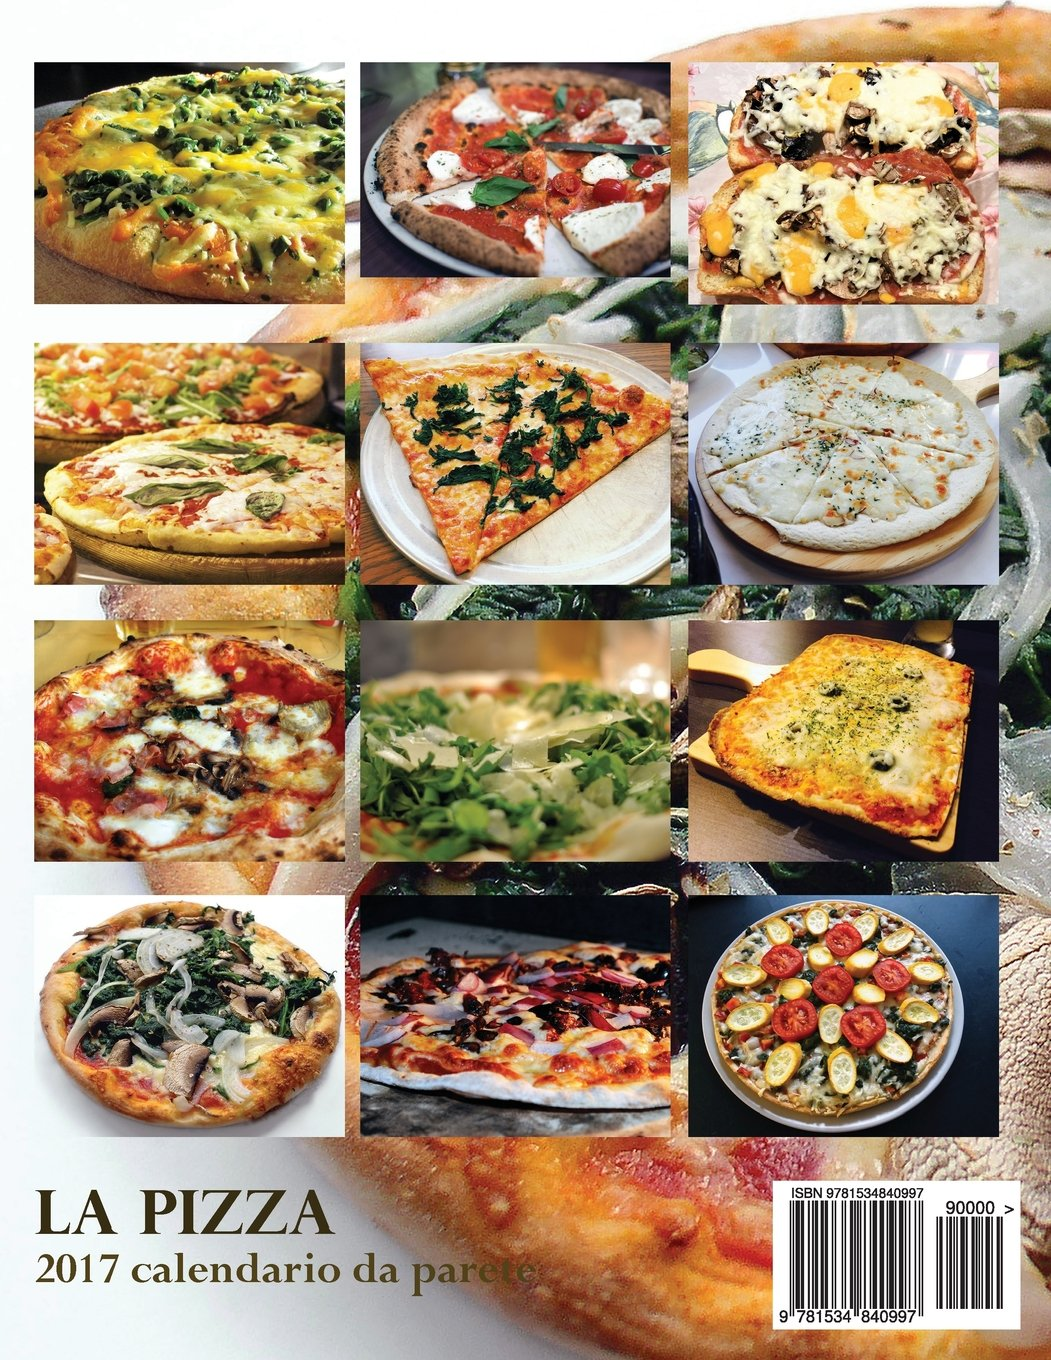 La Pizza 2017 Calendario Da Parete (Edizione Italia) (Italian Edition) by Createspace Independent Publishing Platform